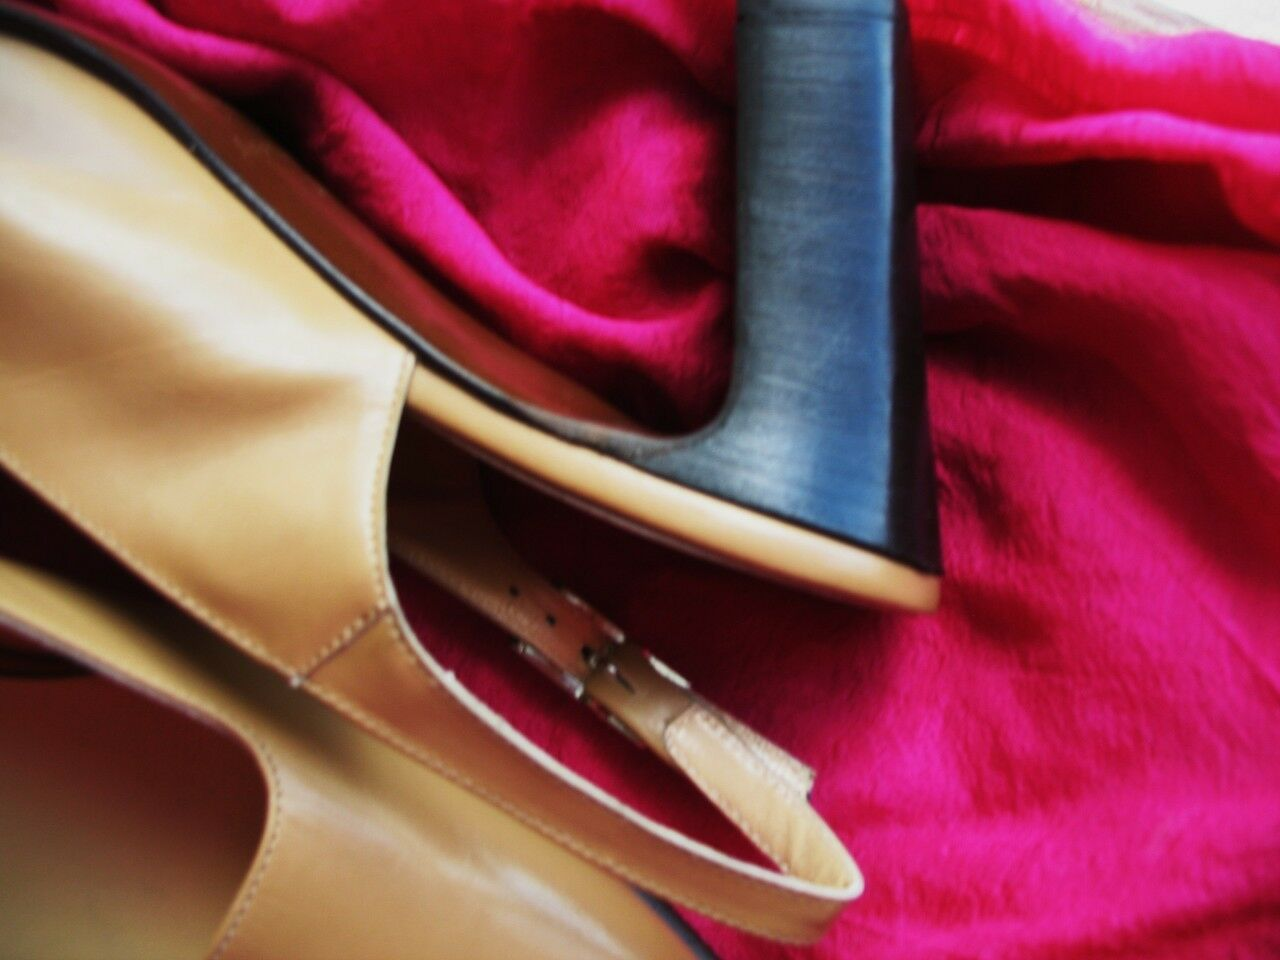 ANN TAYLOR schuhe TAN LEATHER SLINGBACKS W BUCKLES BUCKLES BUCKLES Größe 7M 37 MADE IN ITALY 2be934